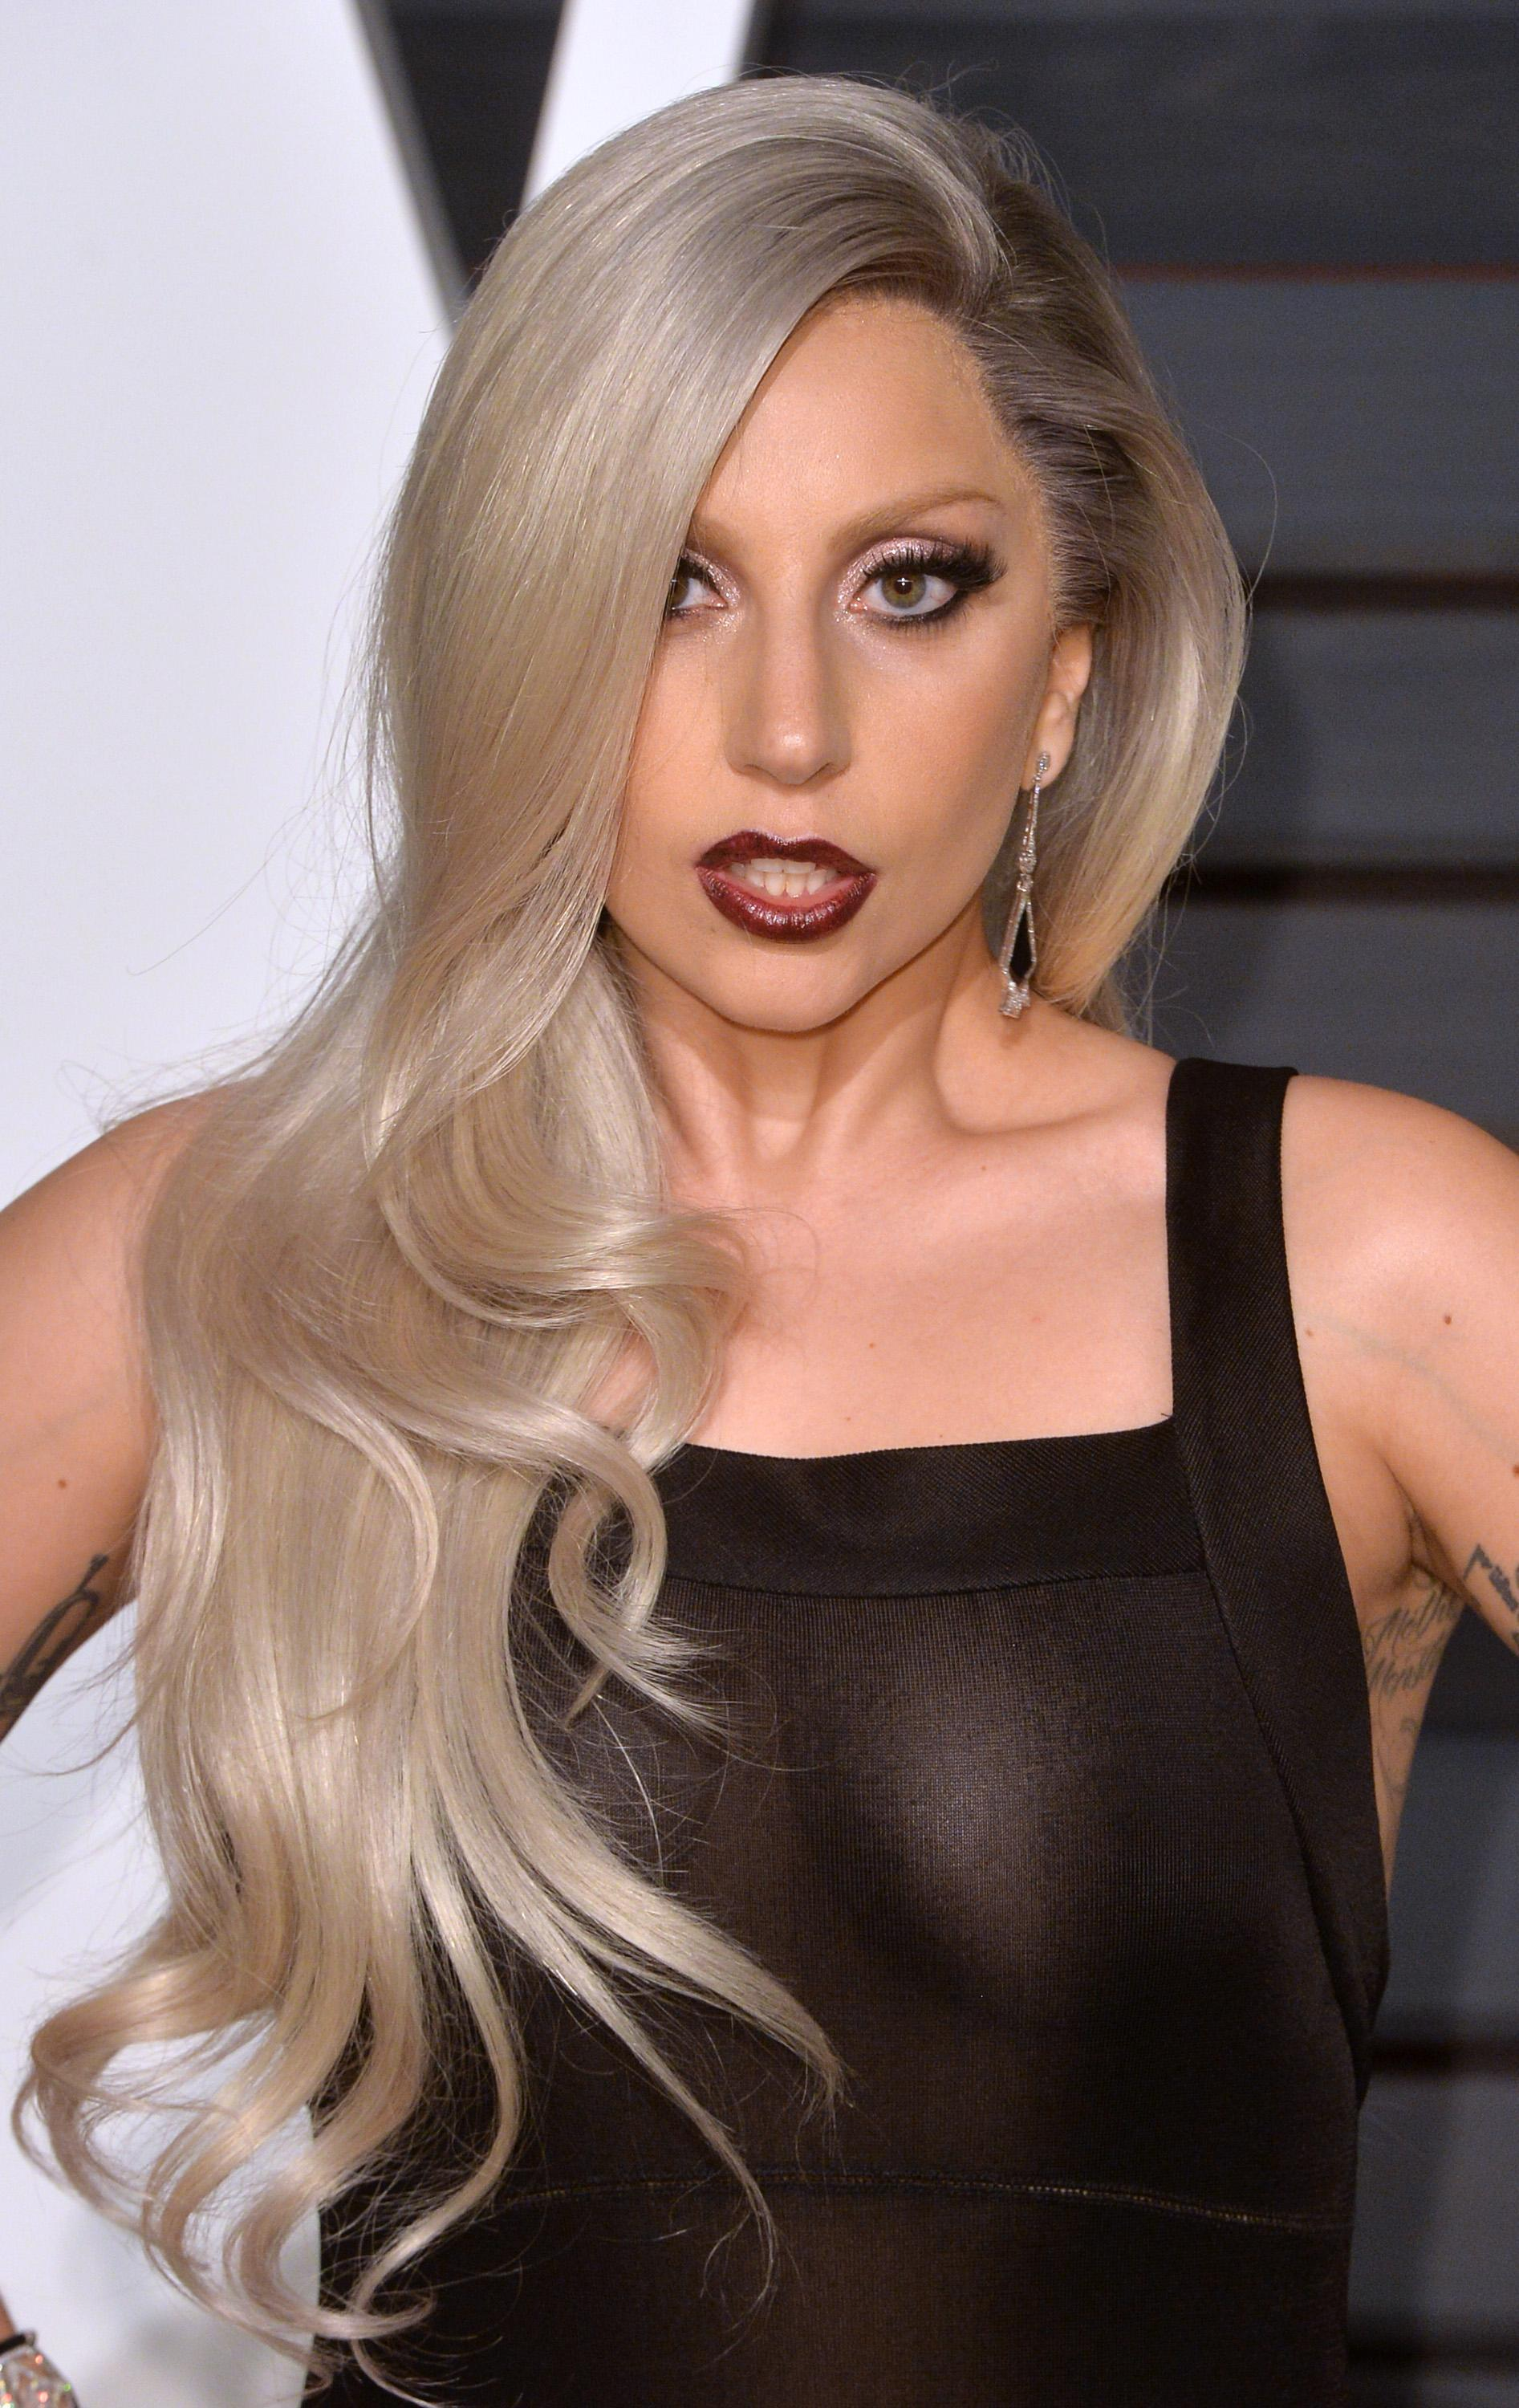 Lady Gaga at the Academy Awards, 2015 | Lady Gaga's Most ... Lady Gaga